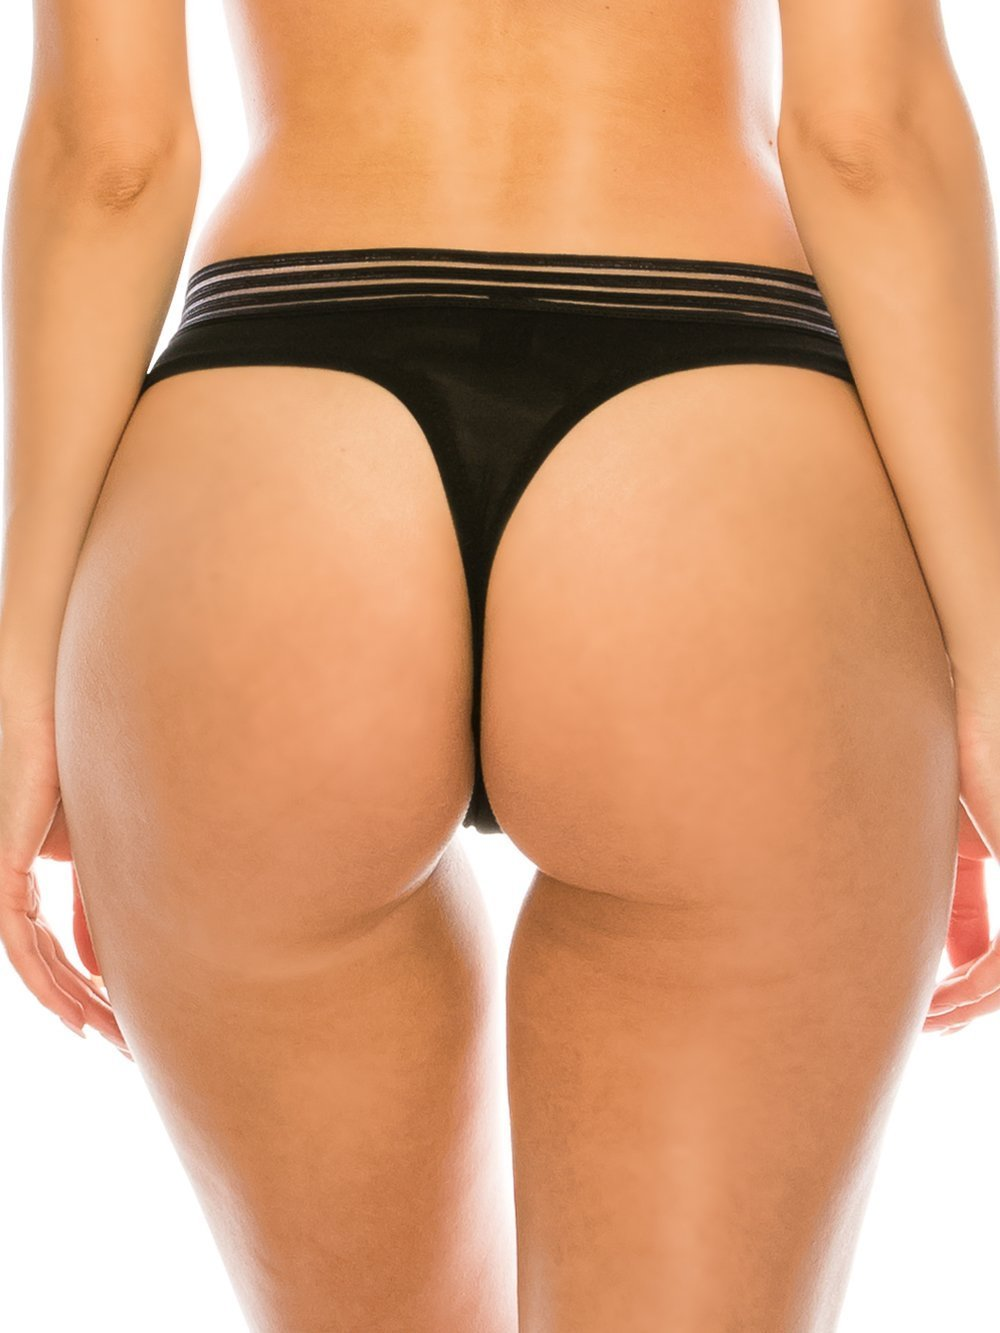 Sheer Thong with Elastic Mesh Band - Youmita Lingerie